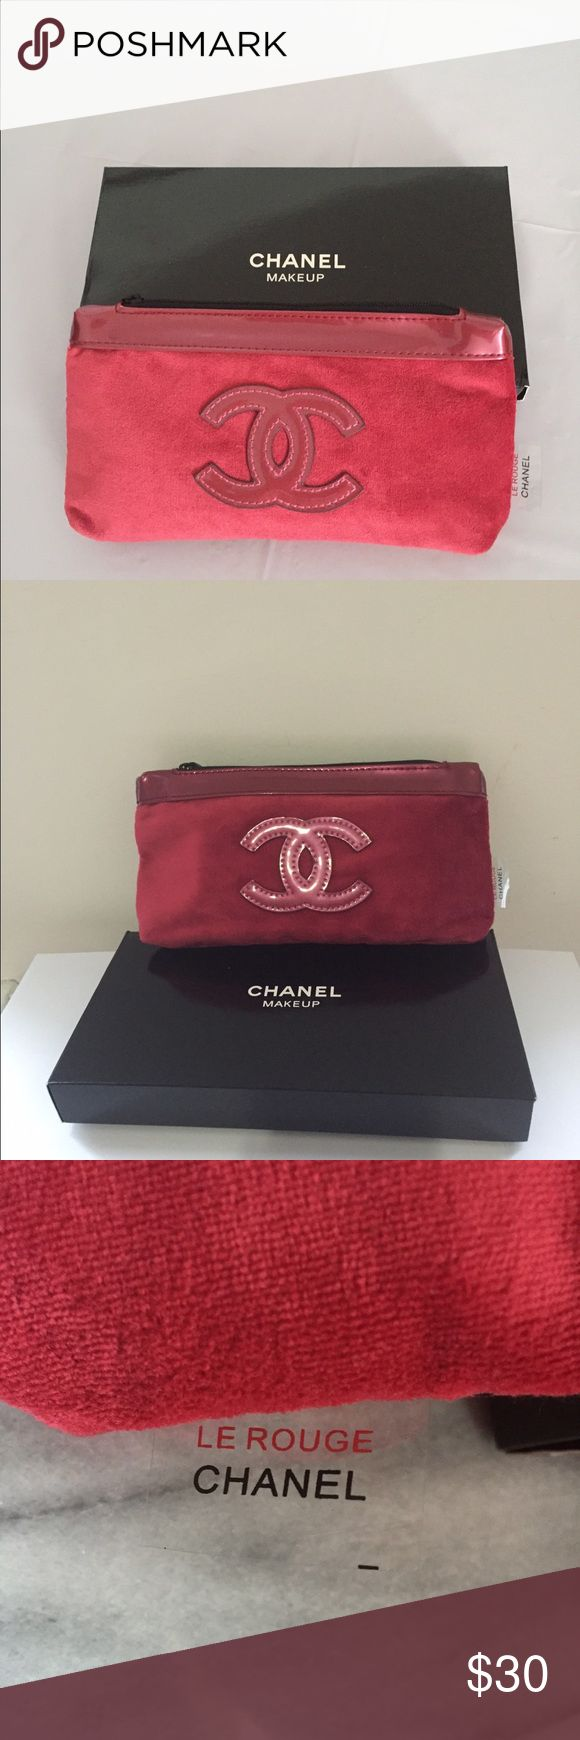 """CHANEL cosmetic bag medium, red NEW Medium sized Chanel cosmetic, makeup bag. Color - red, material- velvet. Big Chanel Logo on front. Length 8"""", height - 4"""", depth - 1"""". Zip closure. Comes with a brand box. THE PRICE IS FIRM. Chanel Bags Cosmetic Bags & Cases"""